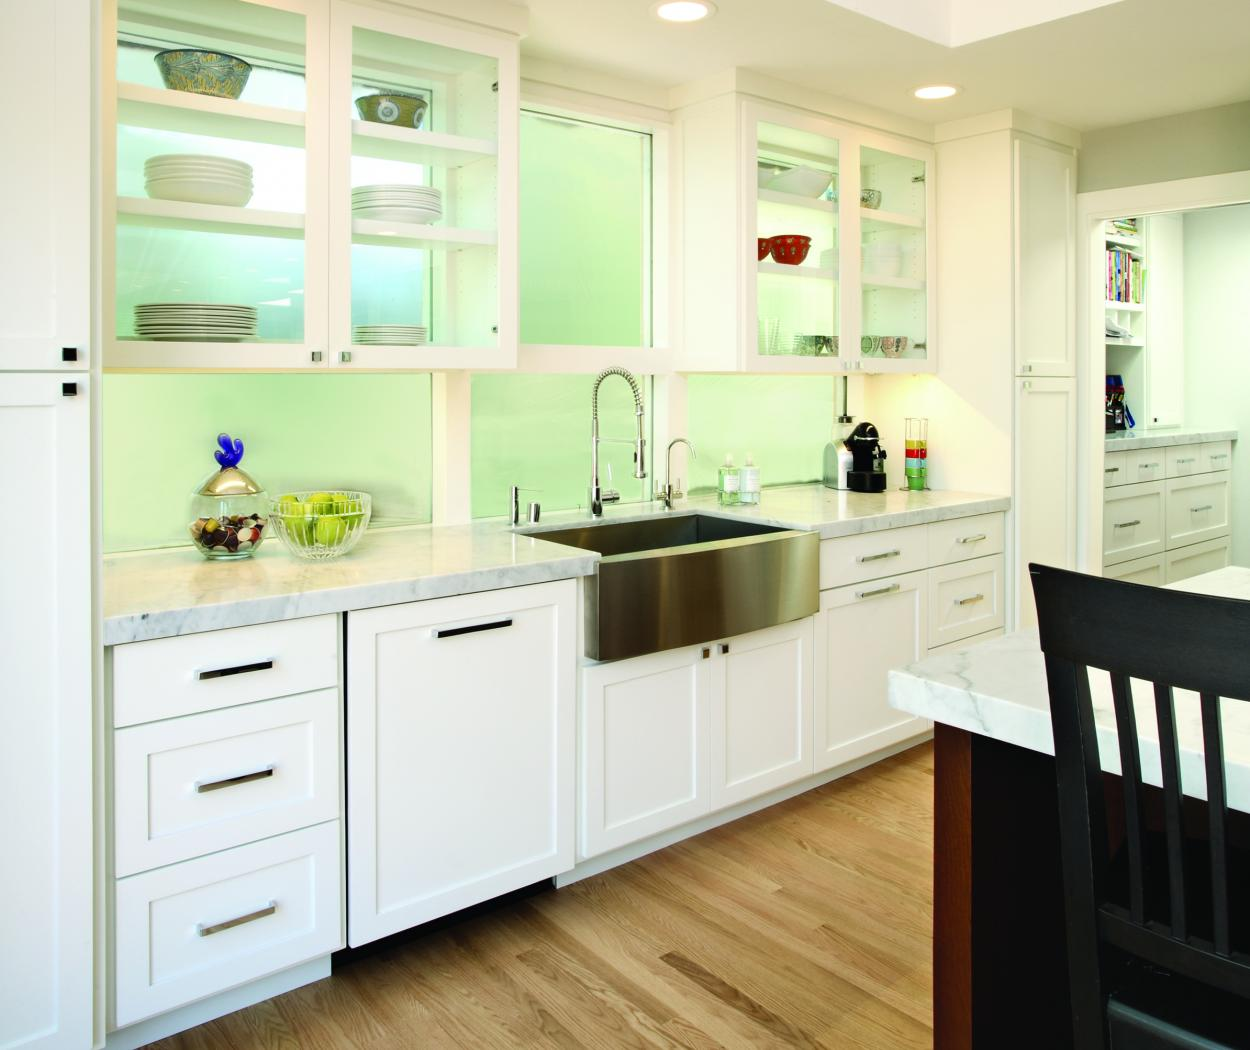 White Transitional Kitchen with Glass Doors, Marble Counter Tops and a Beautiful Farm House Sink